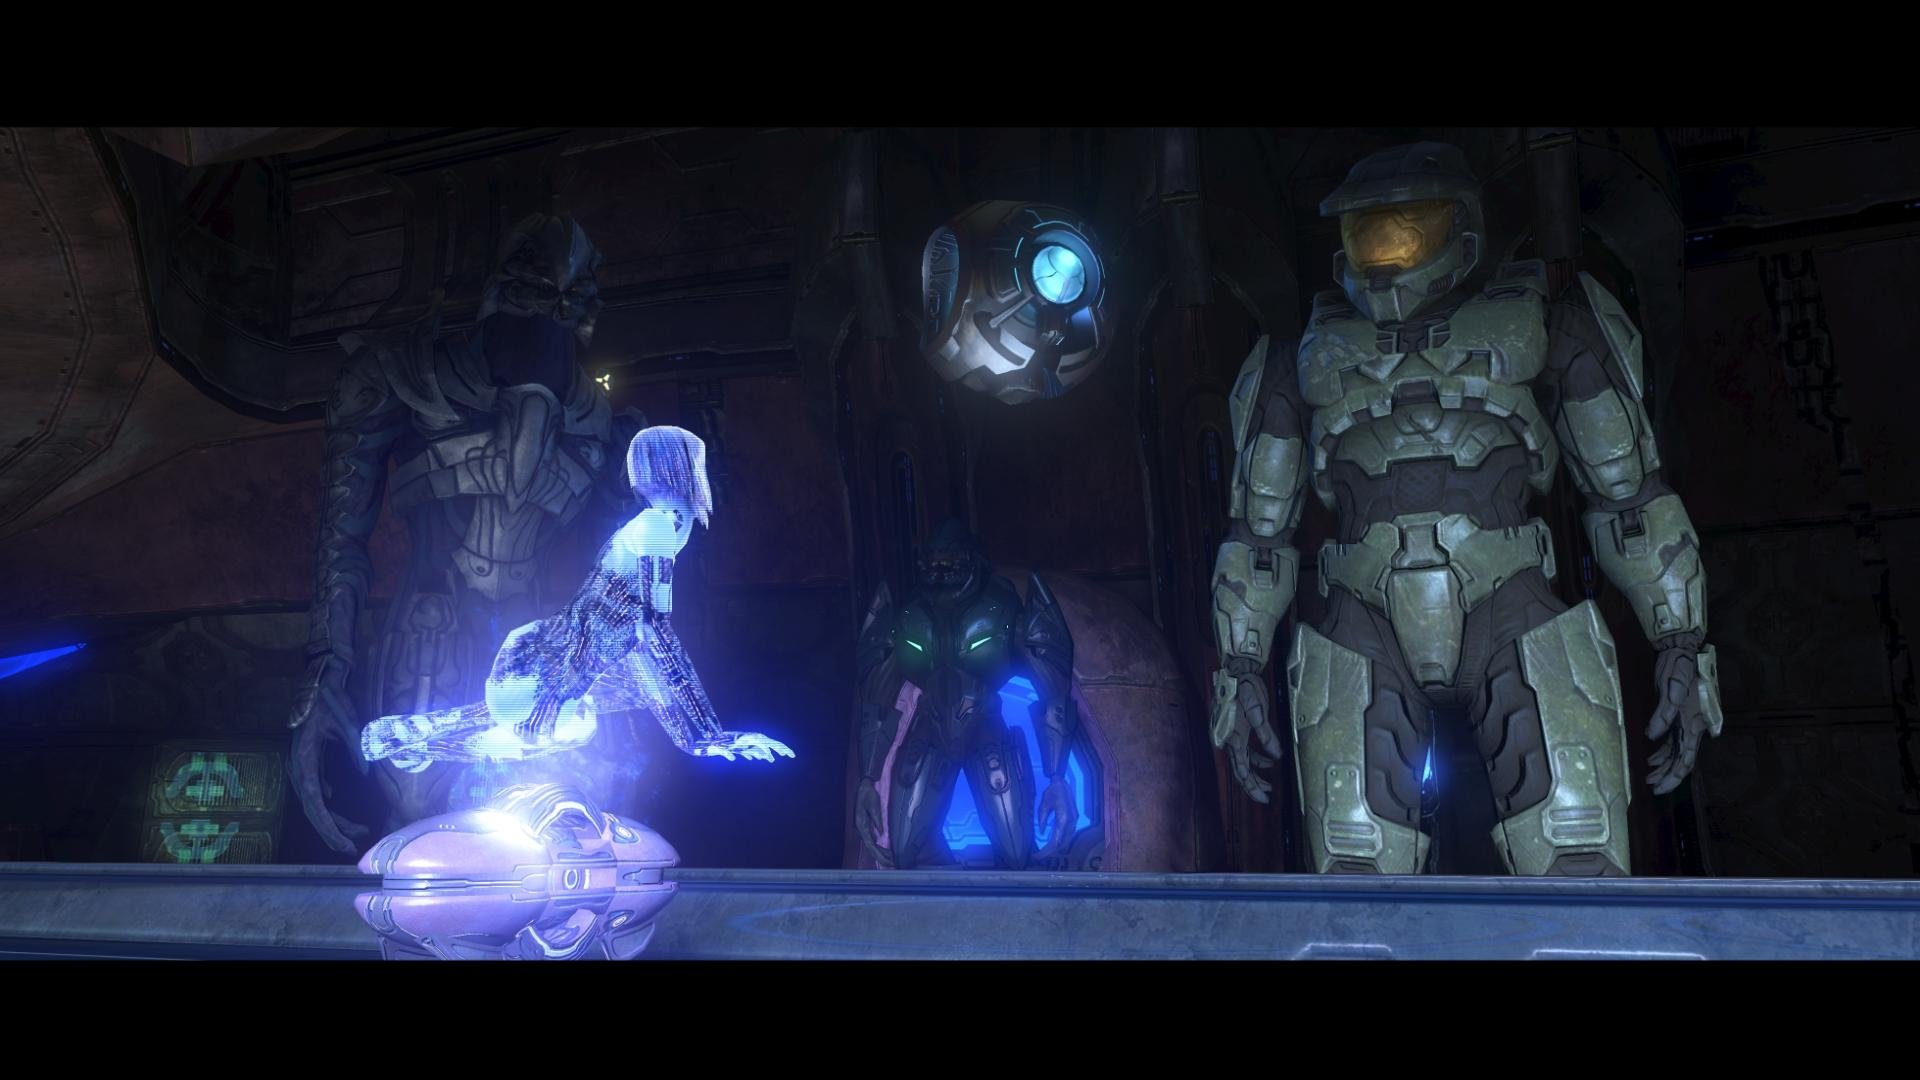 Best Halo 3 Wallpaper Id 74095 For High Resolution 1080p Pc